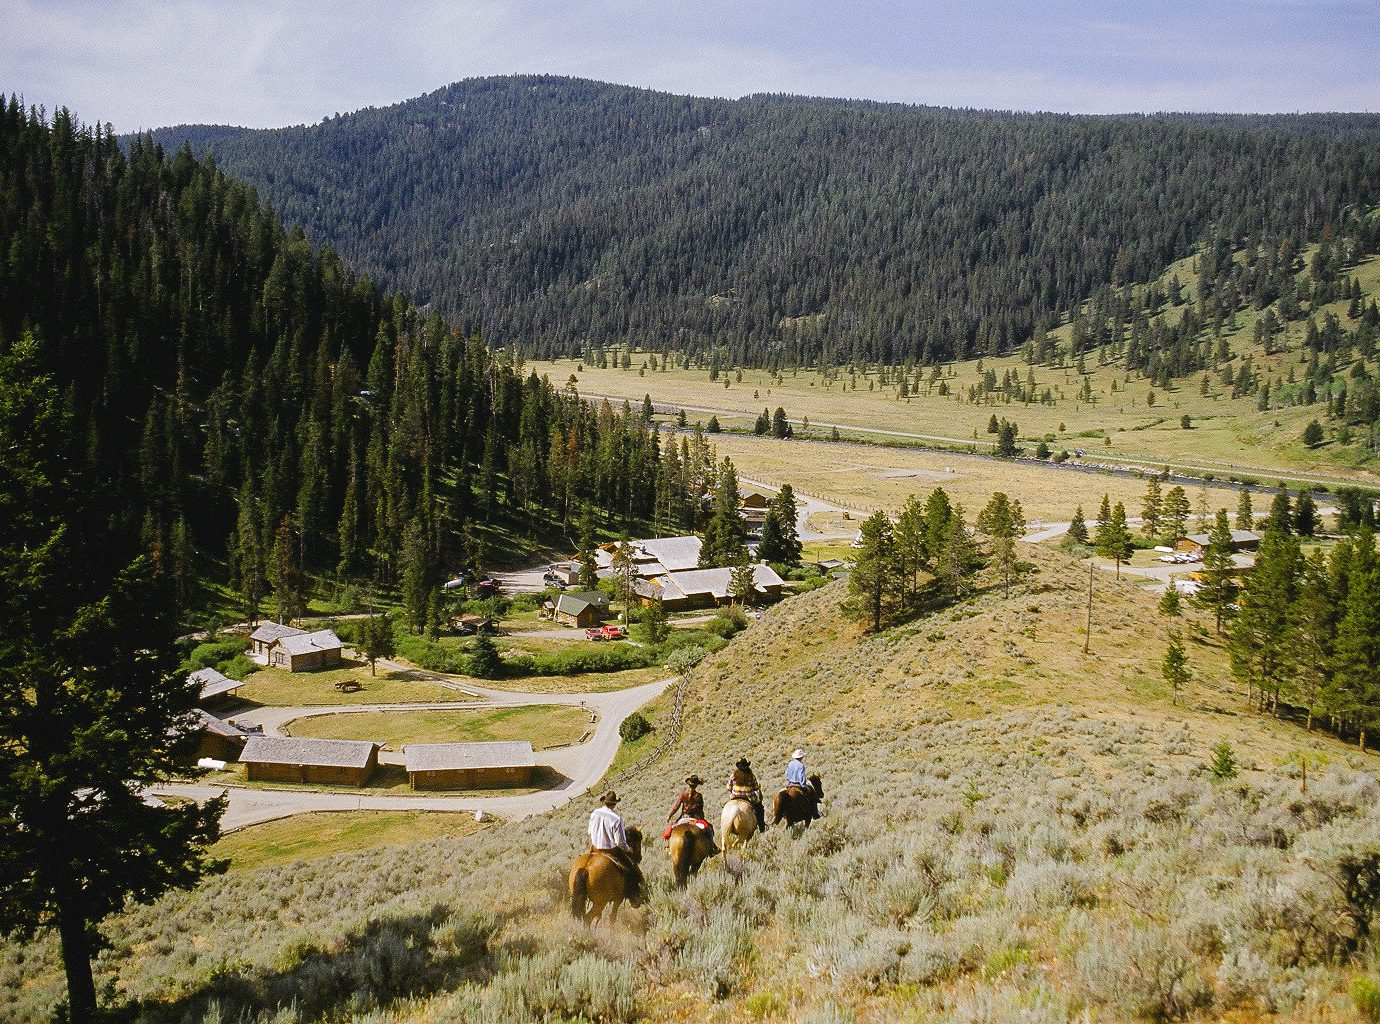 Glamping Hotels Montana Outdoors + Adventure Trip Ideas wilderness mountainous landforms mountain tree path valley mountain range biome trail national park landscape hill ridge meadow pasture continental divide mount scenery sky Ranch Forest temperate coniferous forest